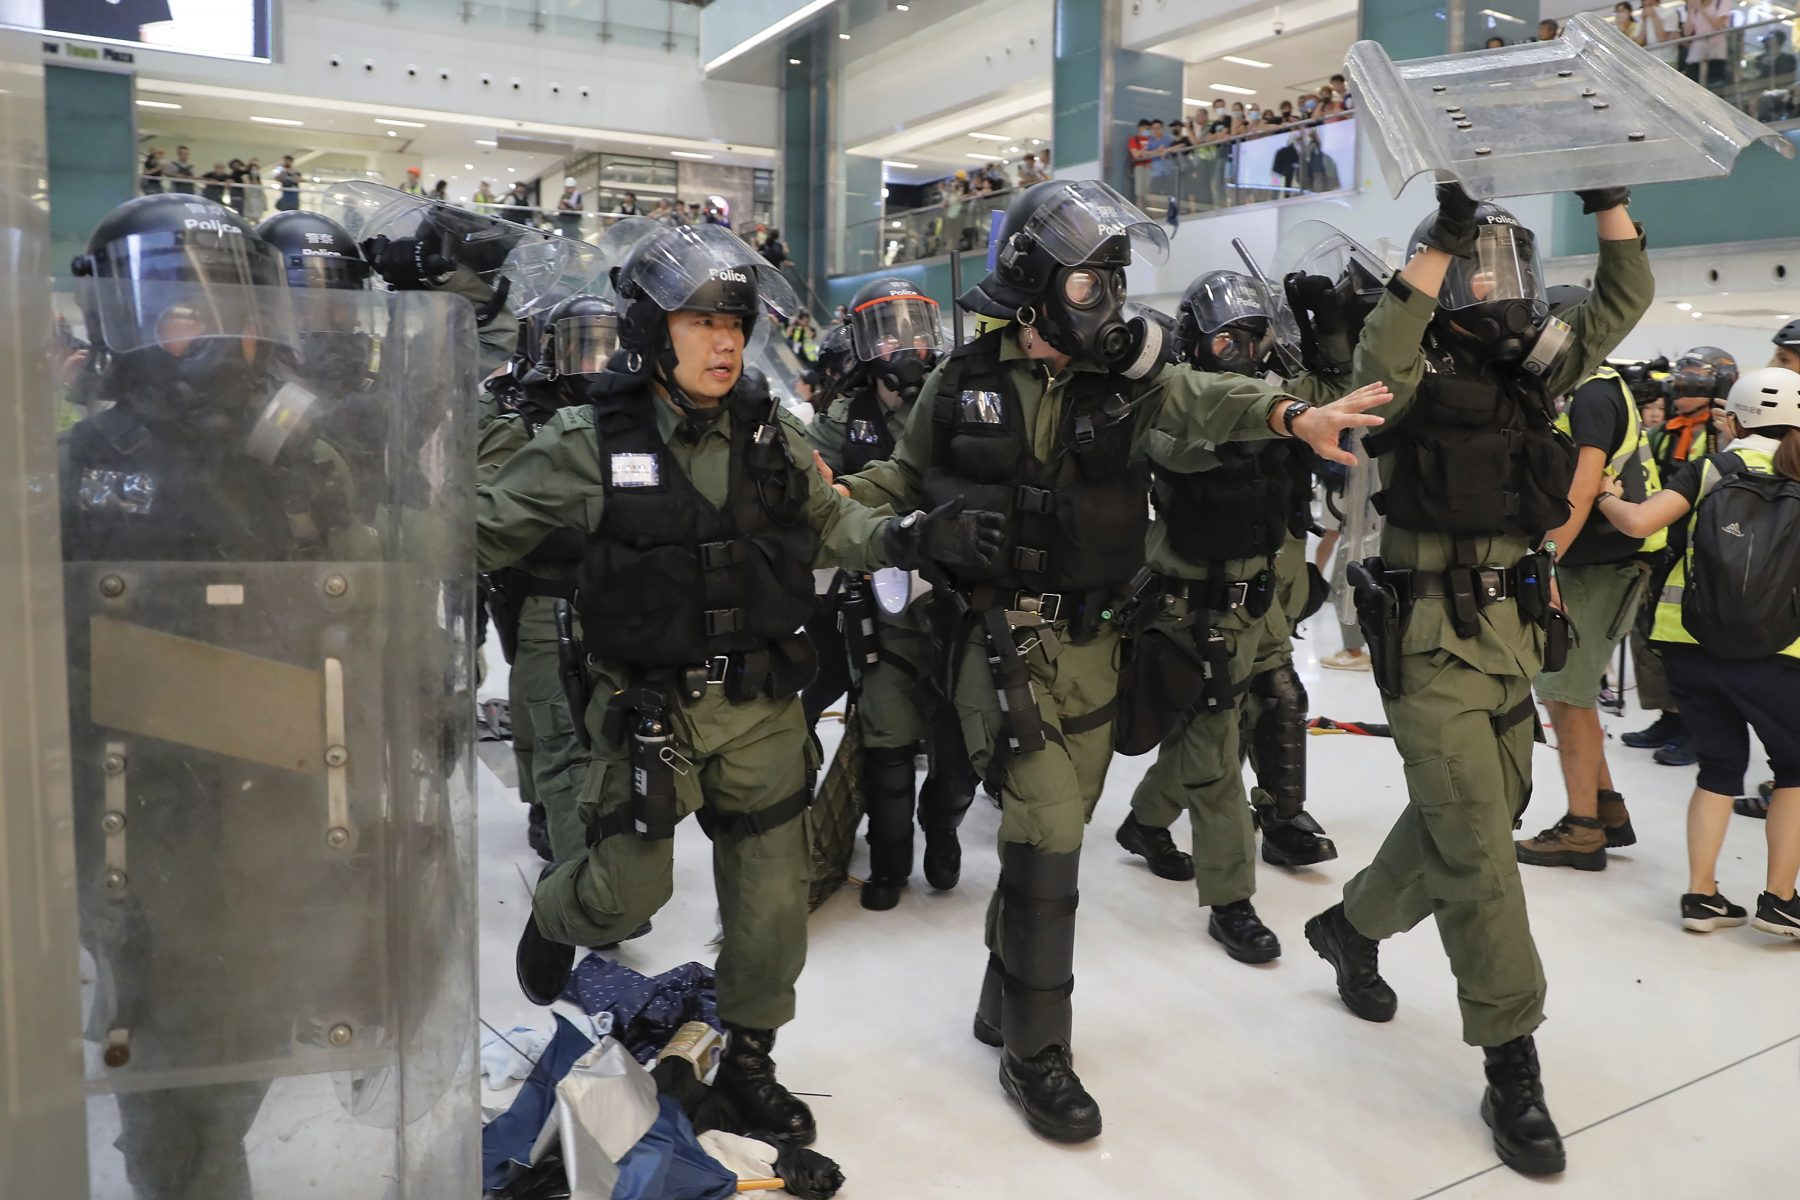 Riot policemen move in to clear the protesters inside a mall in Hong Kong on July 14(AP Photo/Kin Cheung)